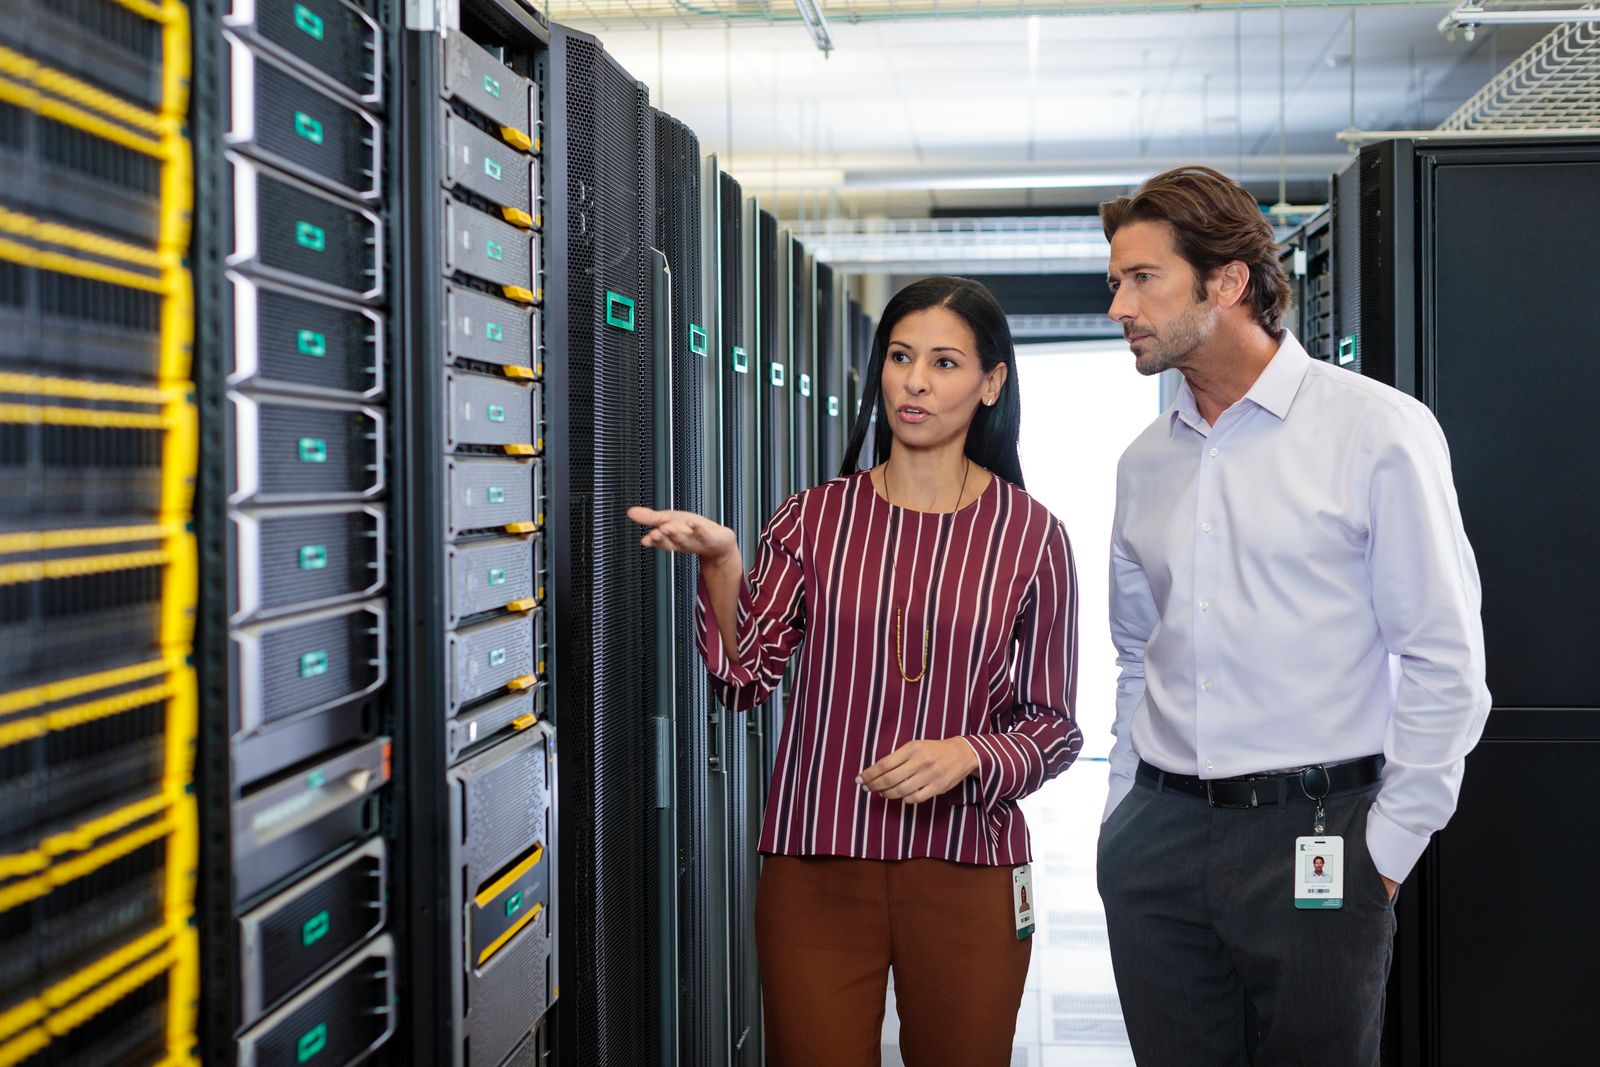 HPE-Sales-Certification-FY19.jpg